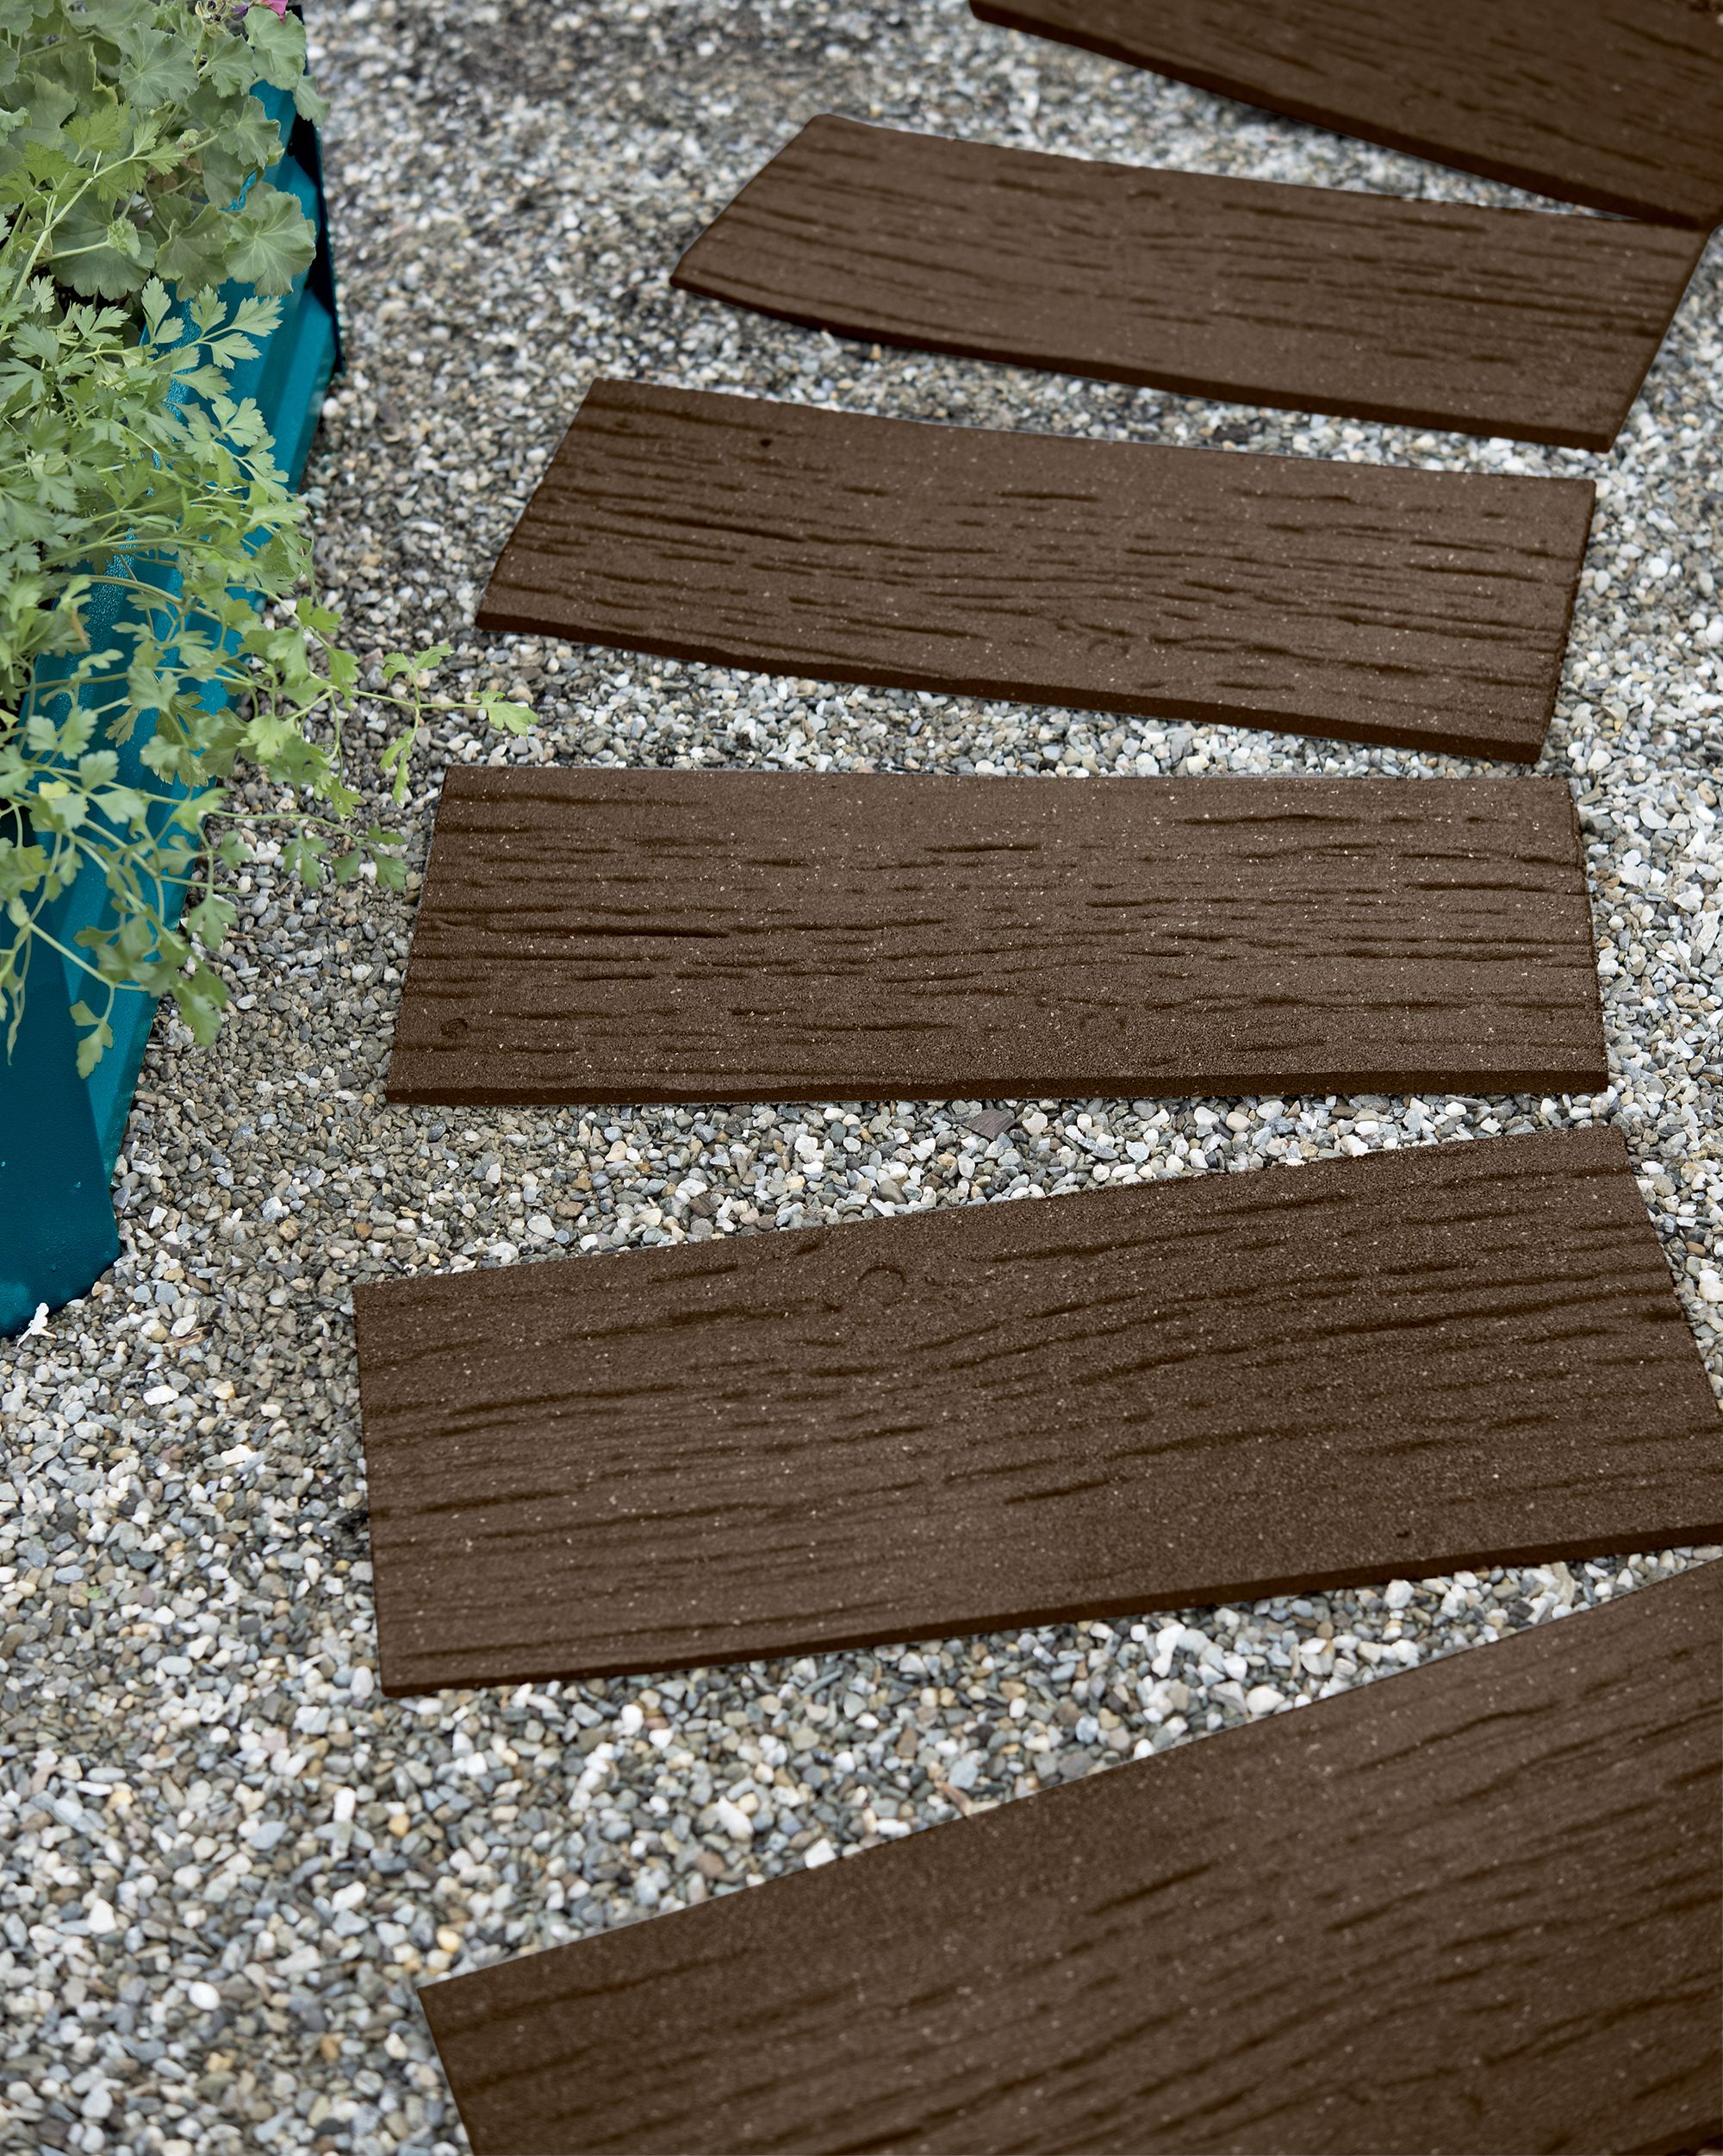 Recycled Rubber Railroad Tie Stepping Stone Gardeners Com In 2020 Pathway Landscaping Stepping Stones Rubber Walkway